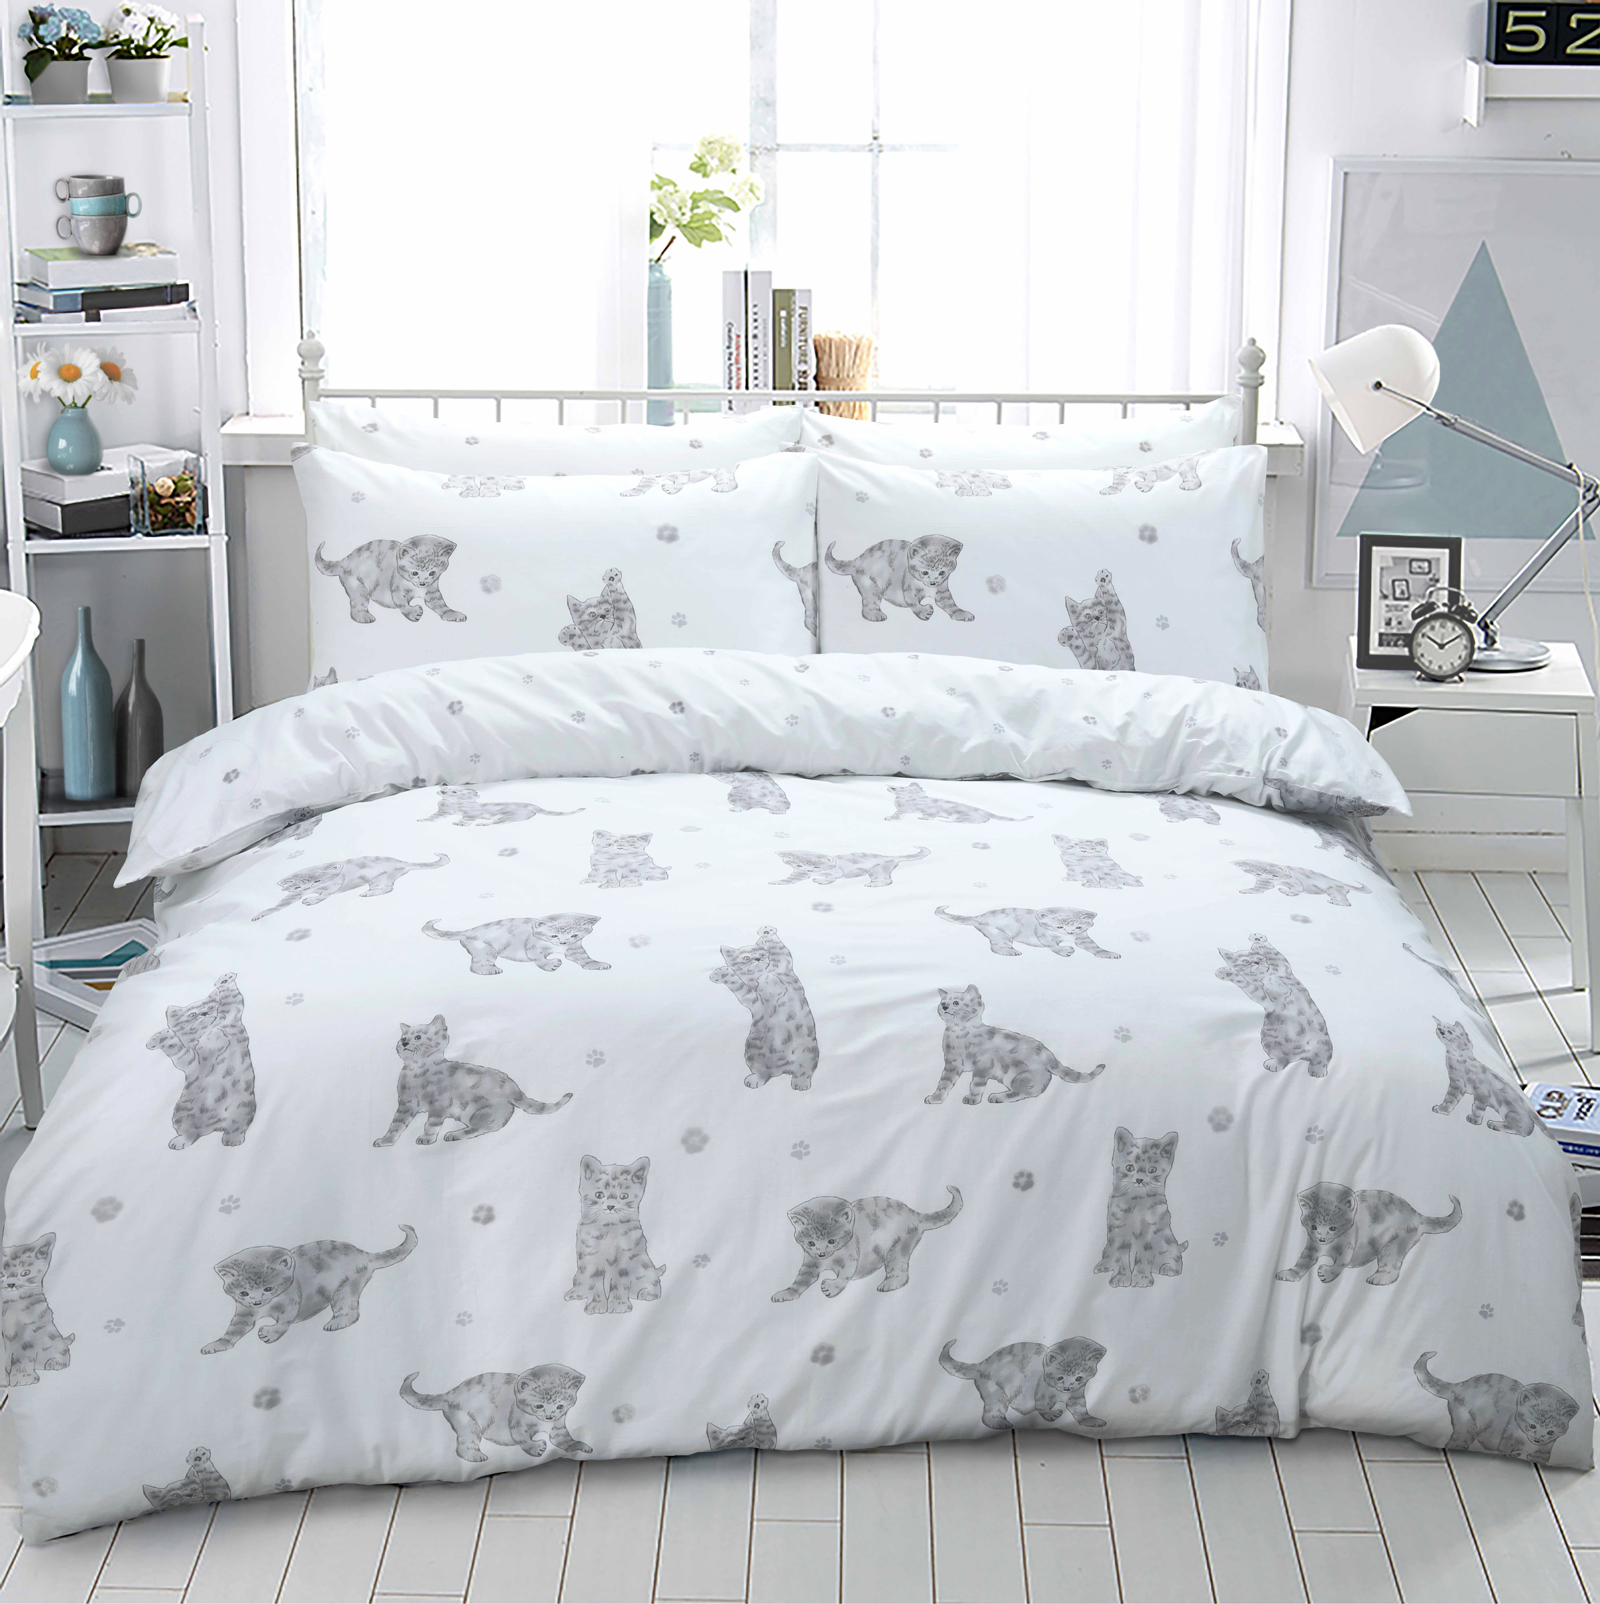 Cat Duvet Cover Set Wholesale Bedding Store De Lavish